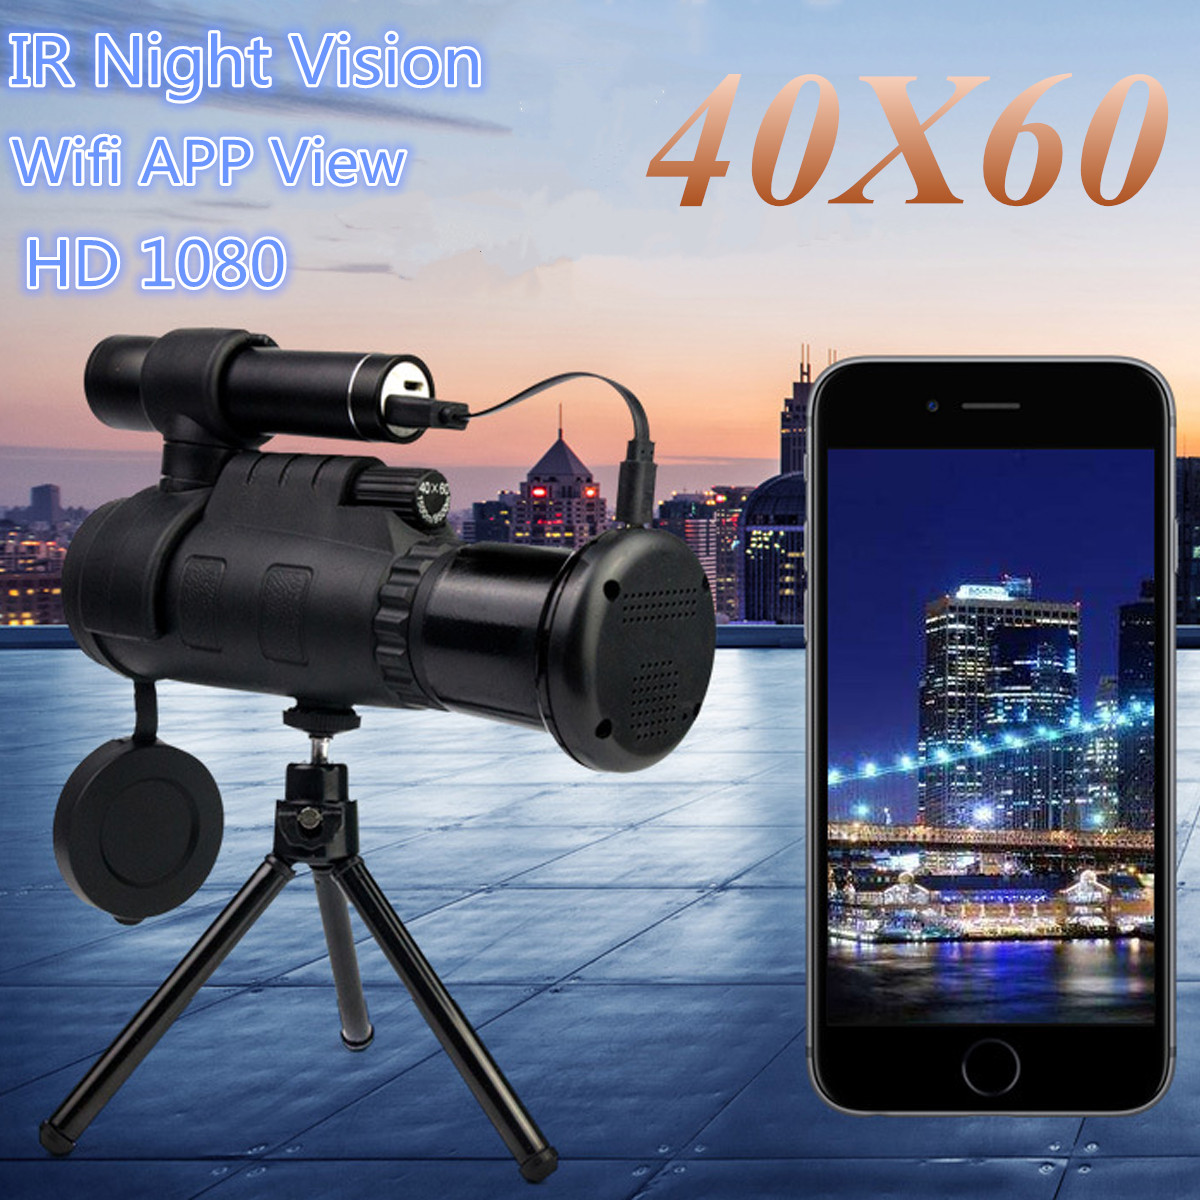 40X60 HD Zoom Optics IR Lens Night Vision Infrared Monocular Binoculars Telescope Phone Holder Tripod for Outdoor Hunting nv400b digital infrared ir night vision large screen binoculars telescope camera video recorder for outdoor sightseeing